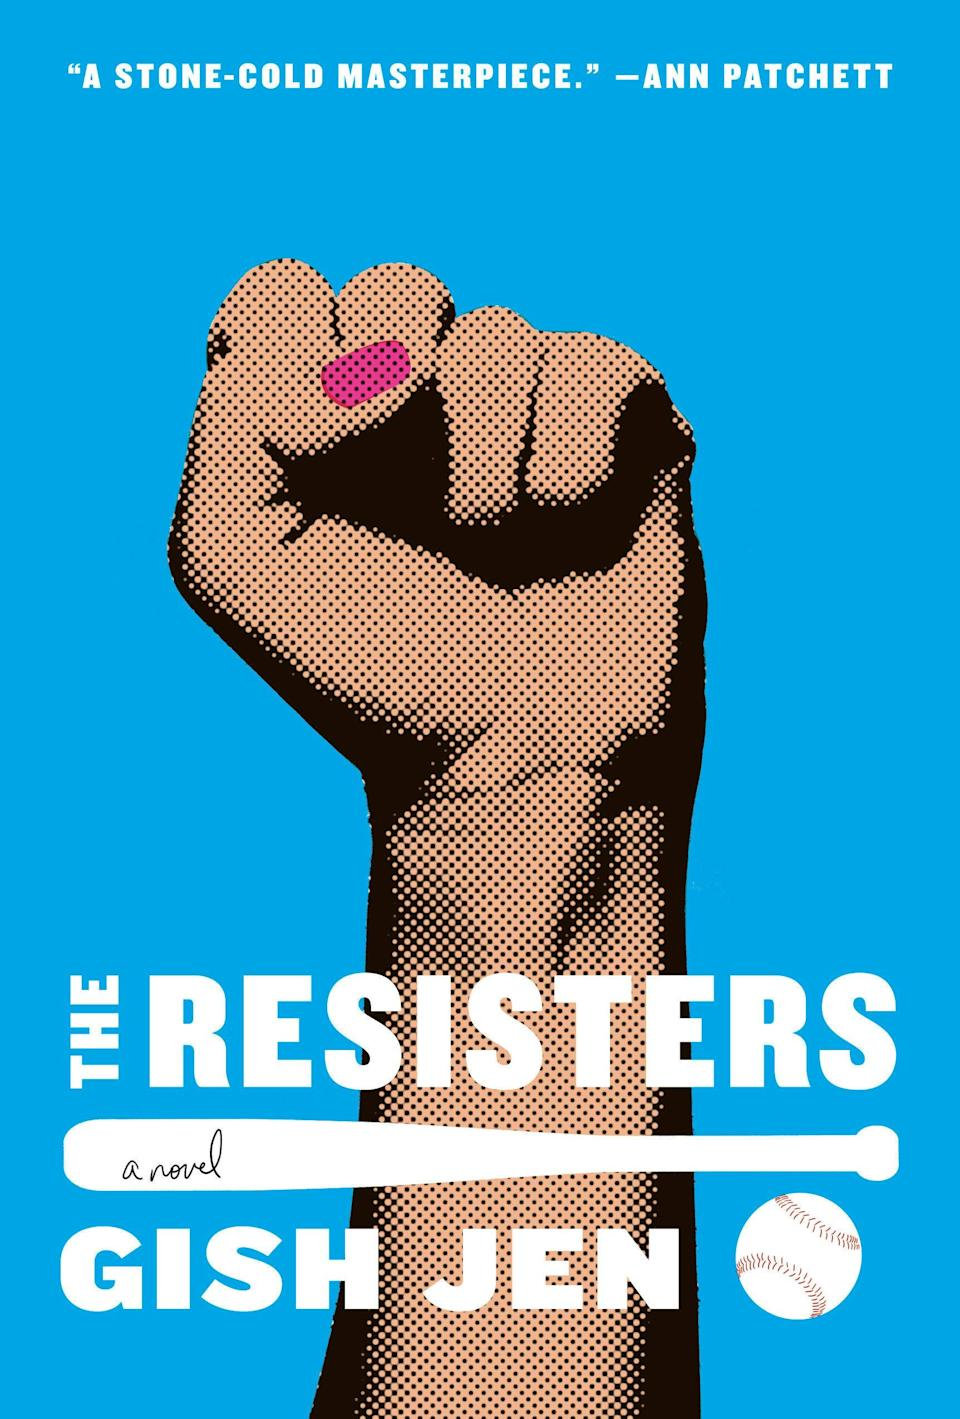 """Reading Gish Jen's <em>The Resisters</em> is like peering into a crystal ball that reveals a disturbing future built upon the dangers of our present world. This is a heartbreaking, poignant novel about family, love, talent, and race that you won't be able to put down. —<em>Lisa Ko, author of</em> <a href=""""https://www.amazon.com/Leavers-National-Book-Award-Finalist/dp/1616206888"""" rel=""""nofollow noopener"""" target=""""_blank"""" data-ylk=""""slk:The Leavers"""" class=""""link rapid-noclick-resp"""">The Leavers</a>"""